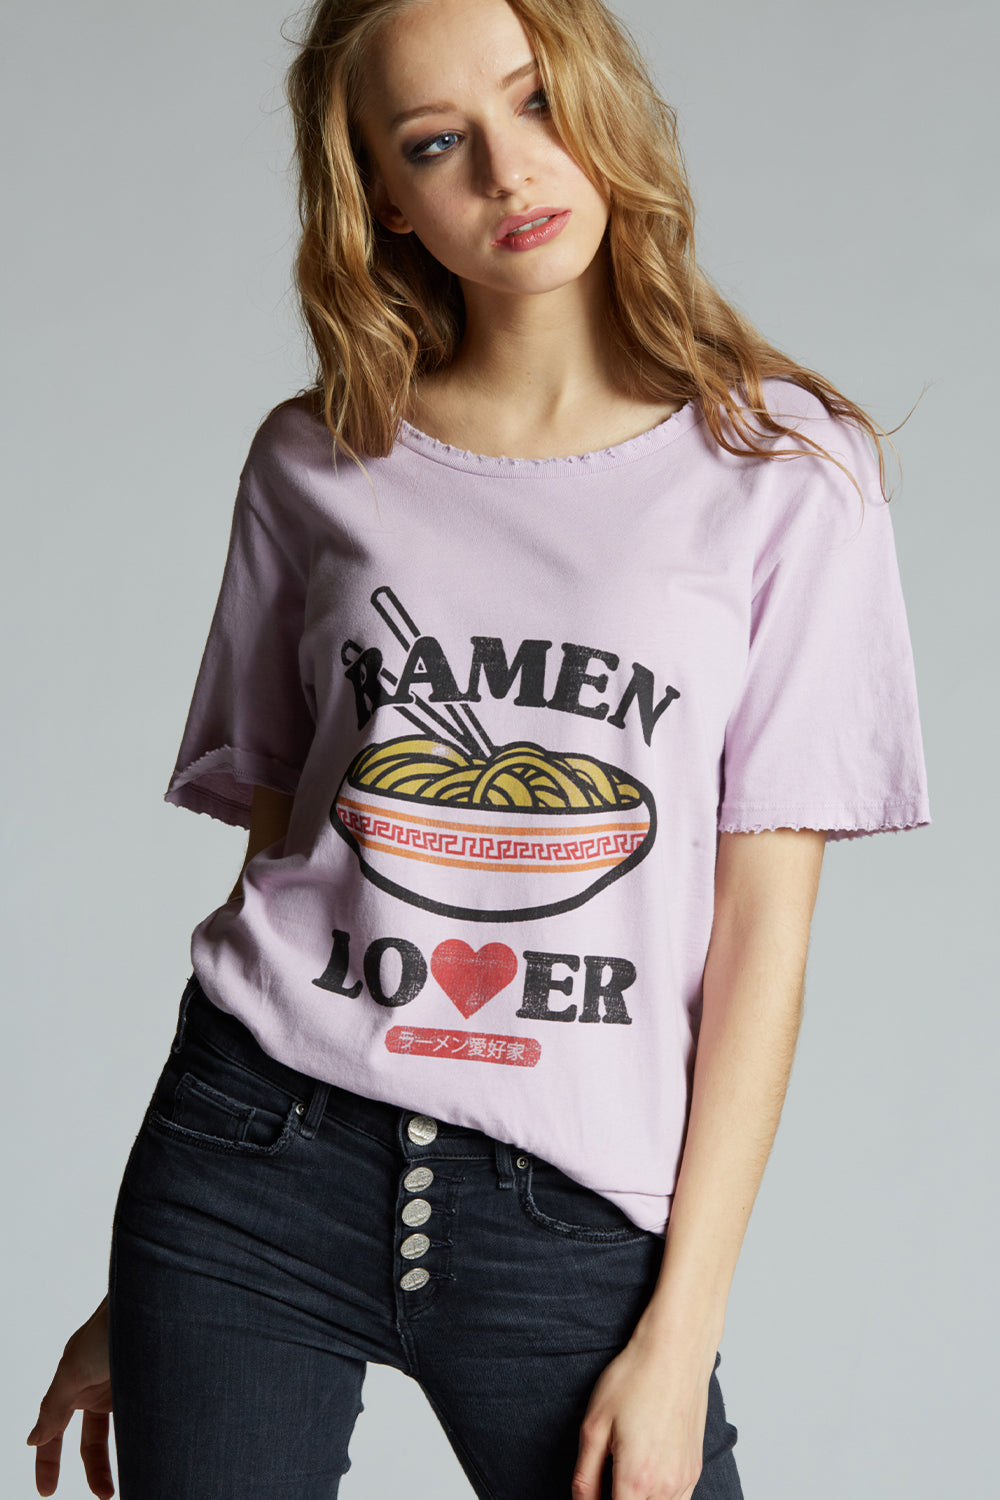 Ramen Lover Members Only Boyfriend Tee